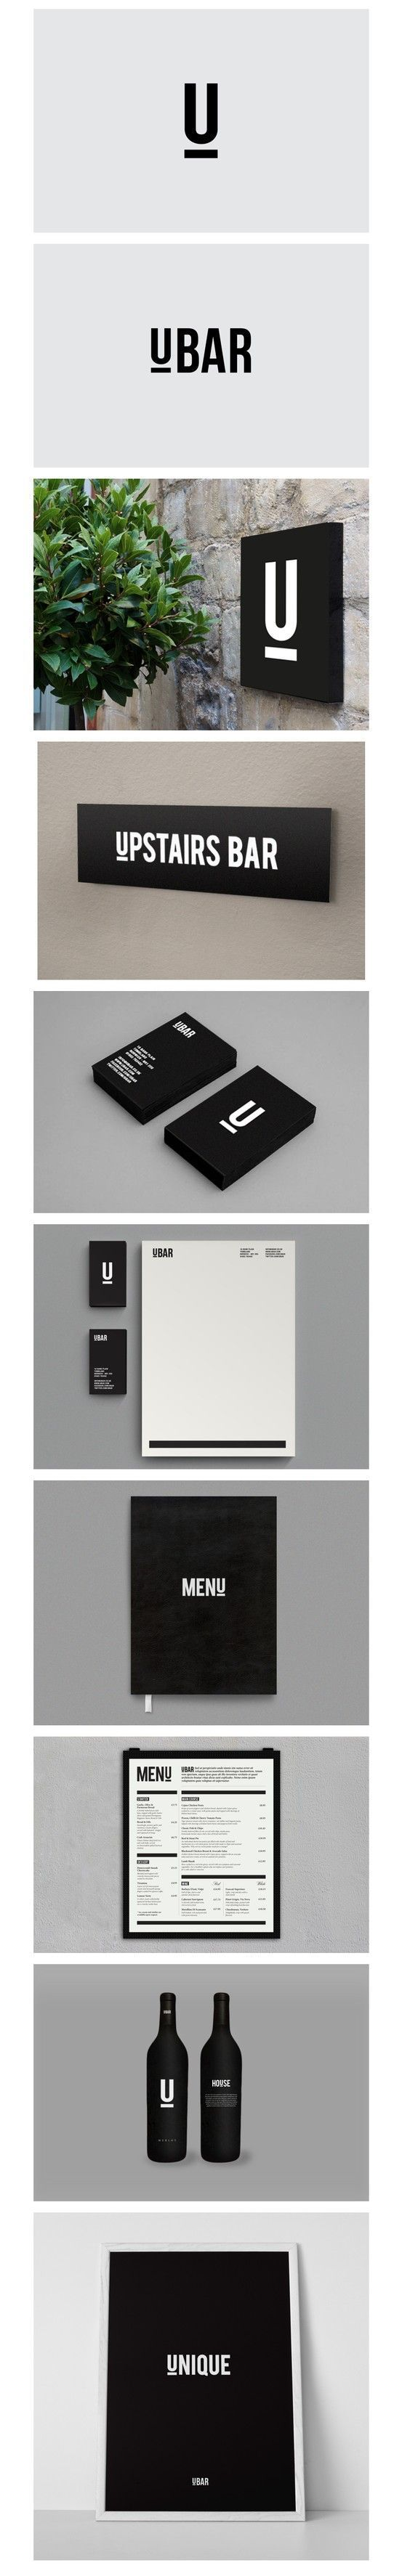 Minimalist logo for simple branding for your business or